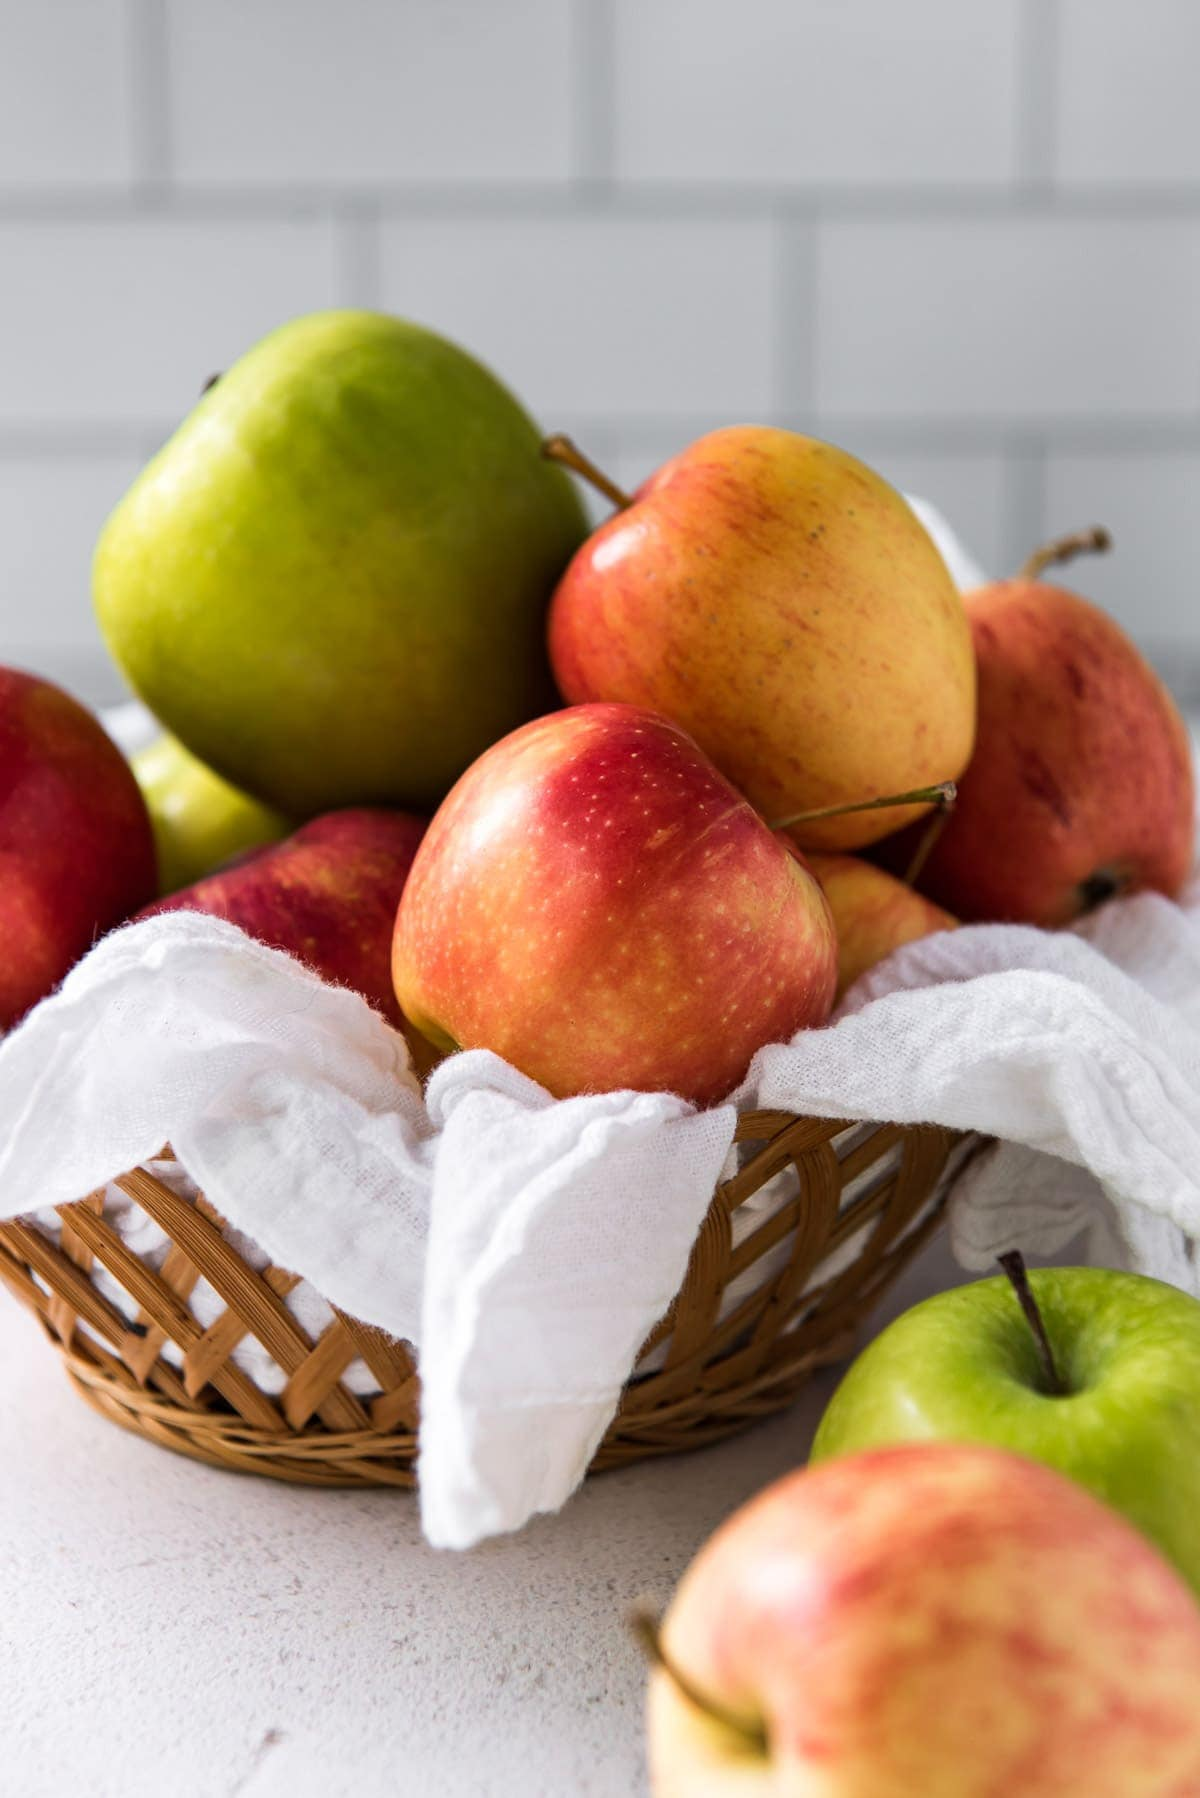 basket with white napkin, green and red apples